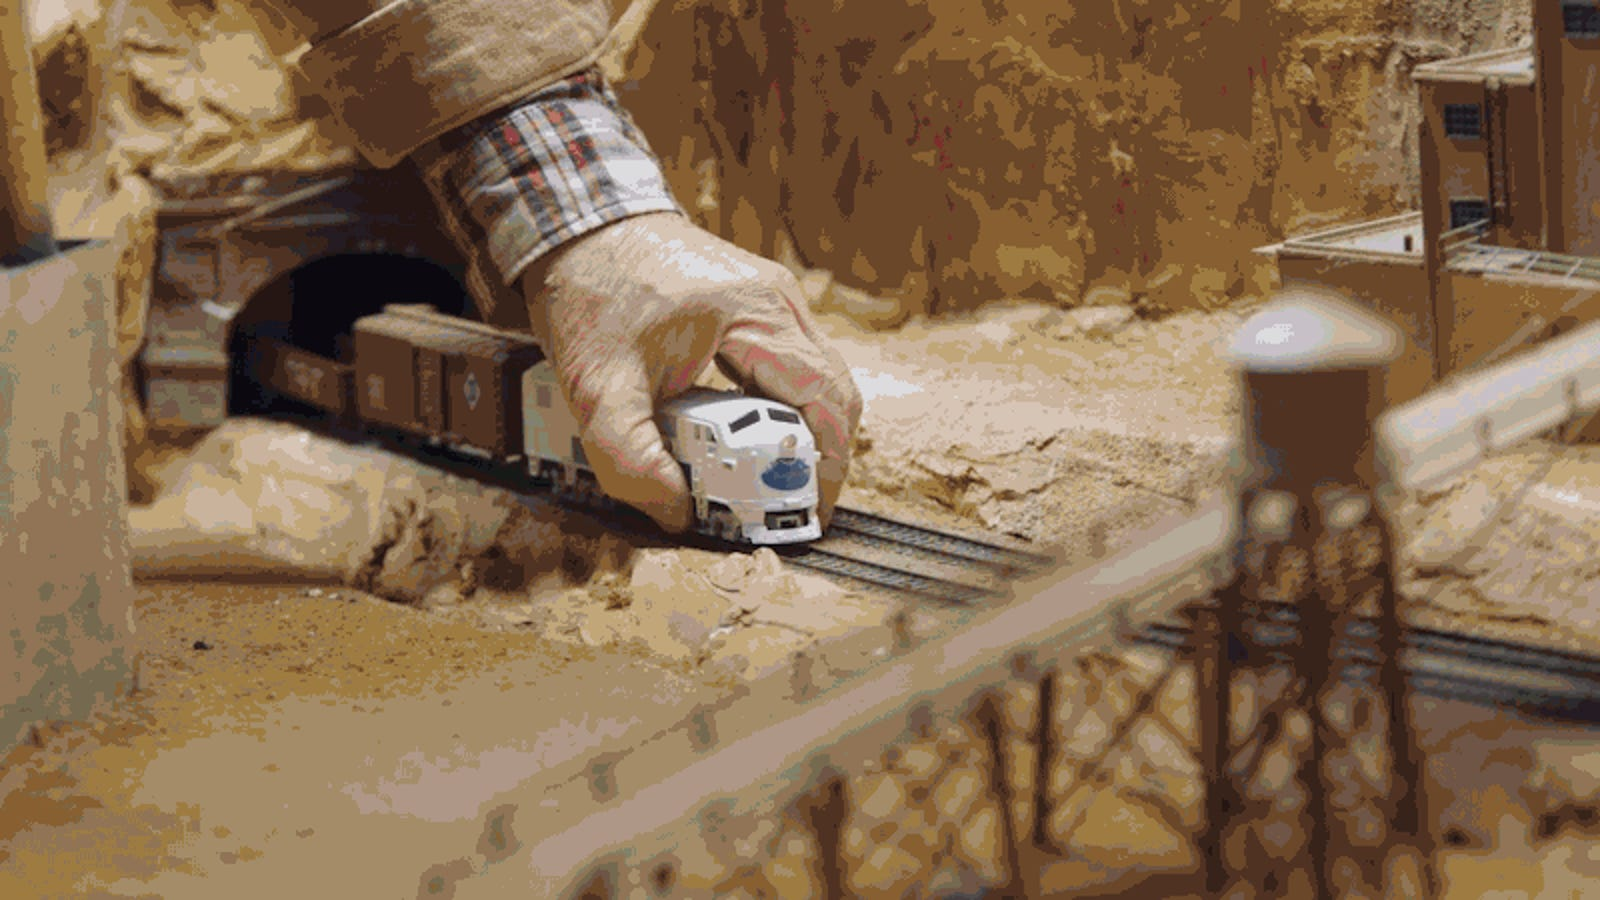 A Man's Model Train Hobby Becomes an Artistic Obsession in This Quirky Short Doc